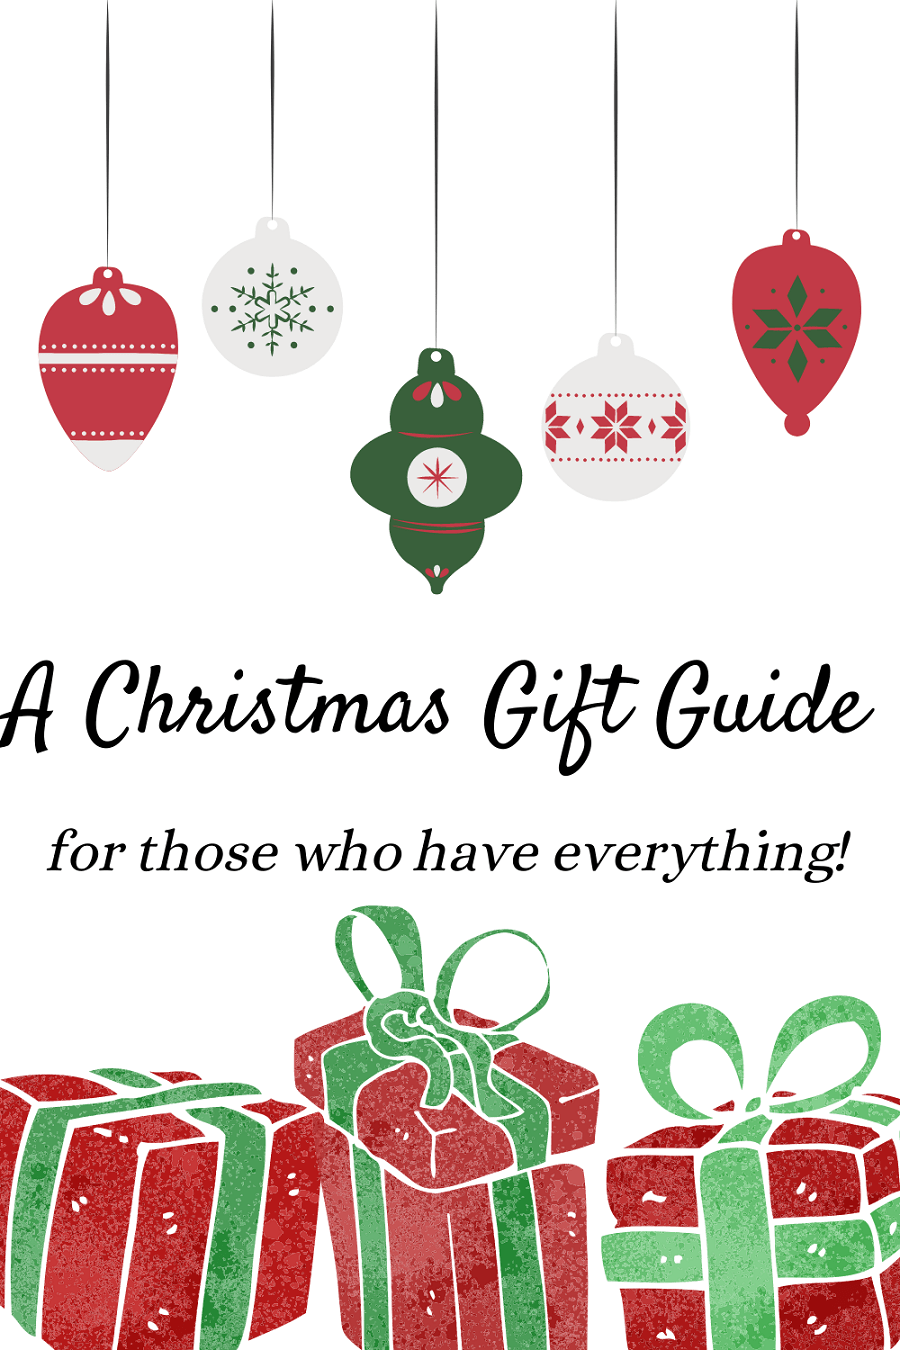 An alternative Christmas gift guide